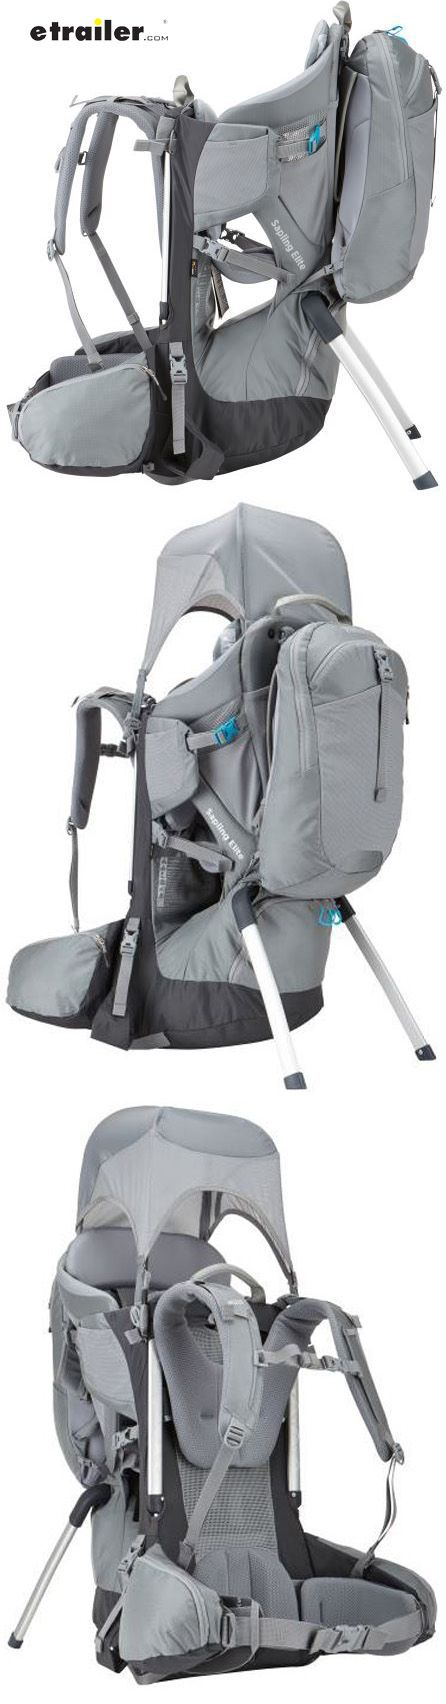 Thule Sapling Elite baby carrier lets you bring your infant hiking. Includes a removable backpack, oversized hip pockets, a 3-liter reservoir sleeve, a child-viewing mirror, and a sun shade. Adjustable straps make it easy to switch off carrying duty.